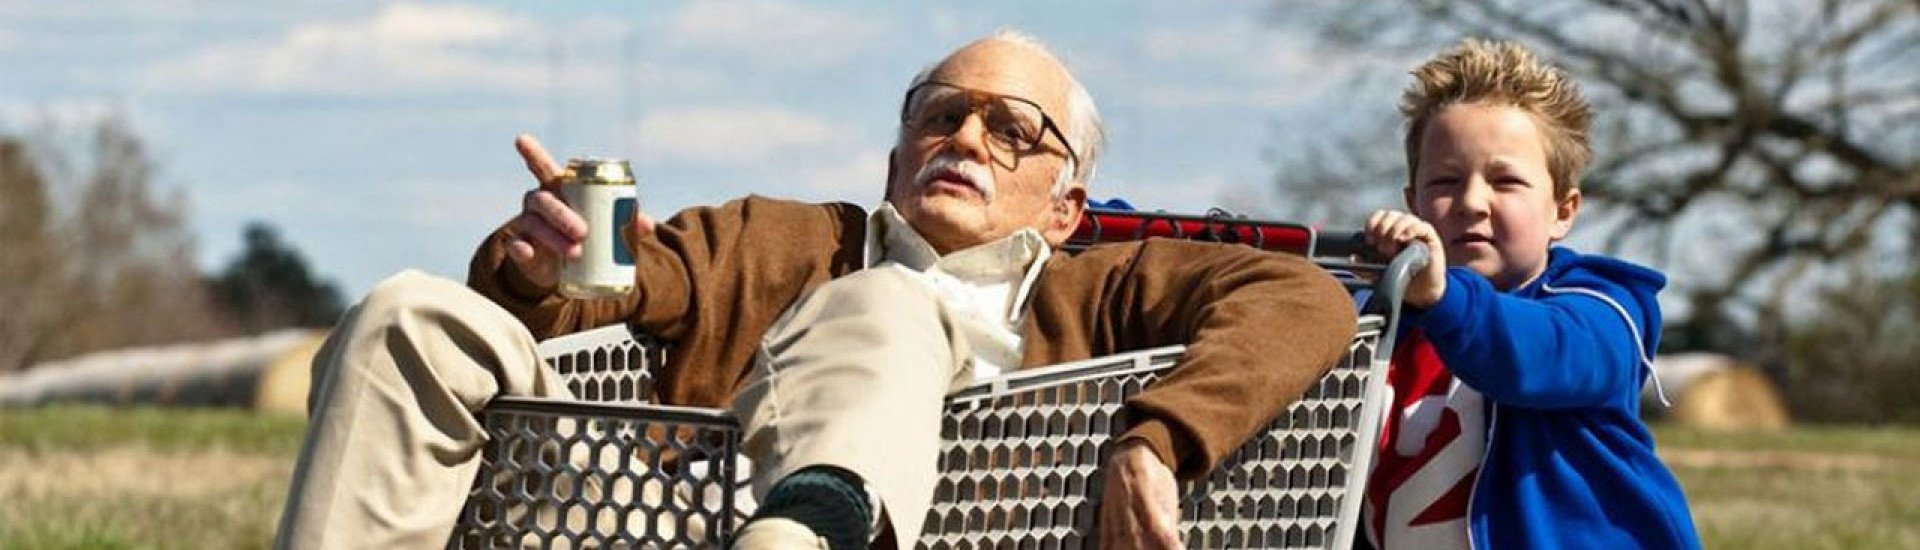 Film: Jackass Presents: Bad Grandpa feature image